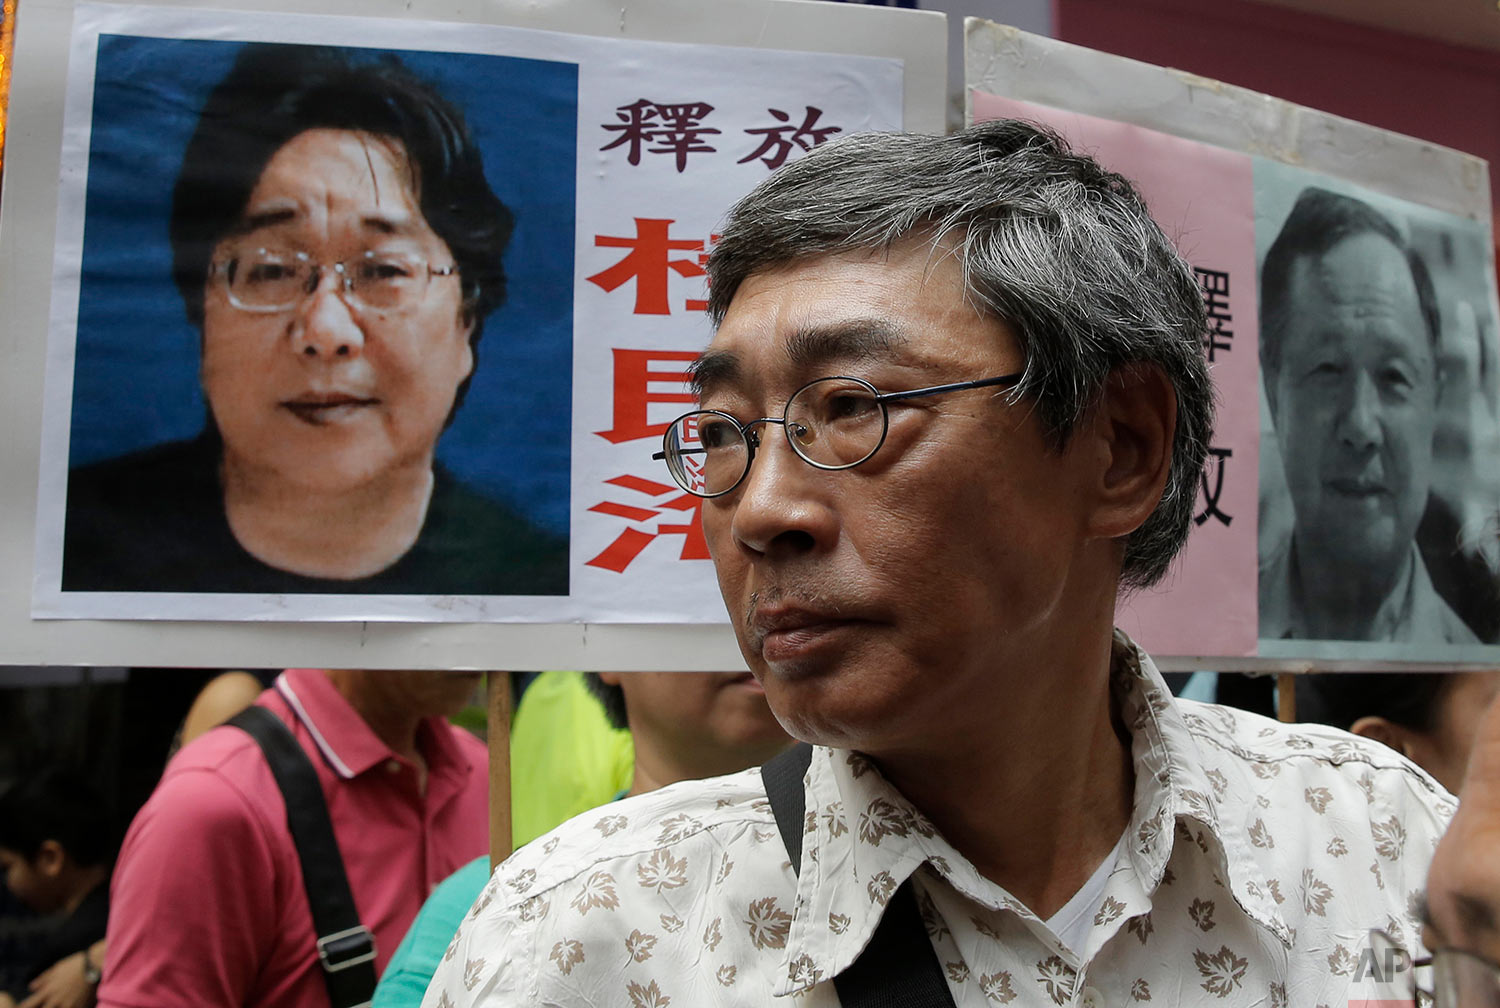 Freed Hong Kong bookseller Lam Wing-kee stands next to a placard with picture of missing bookseller Gui Minhai, in front of his book store in Hong Kong, June 18, 2016, as the protesters are marching to the Chinese central government's liaison office. (AP Photo/Kin Cheung)